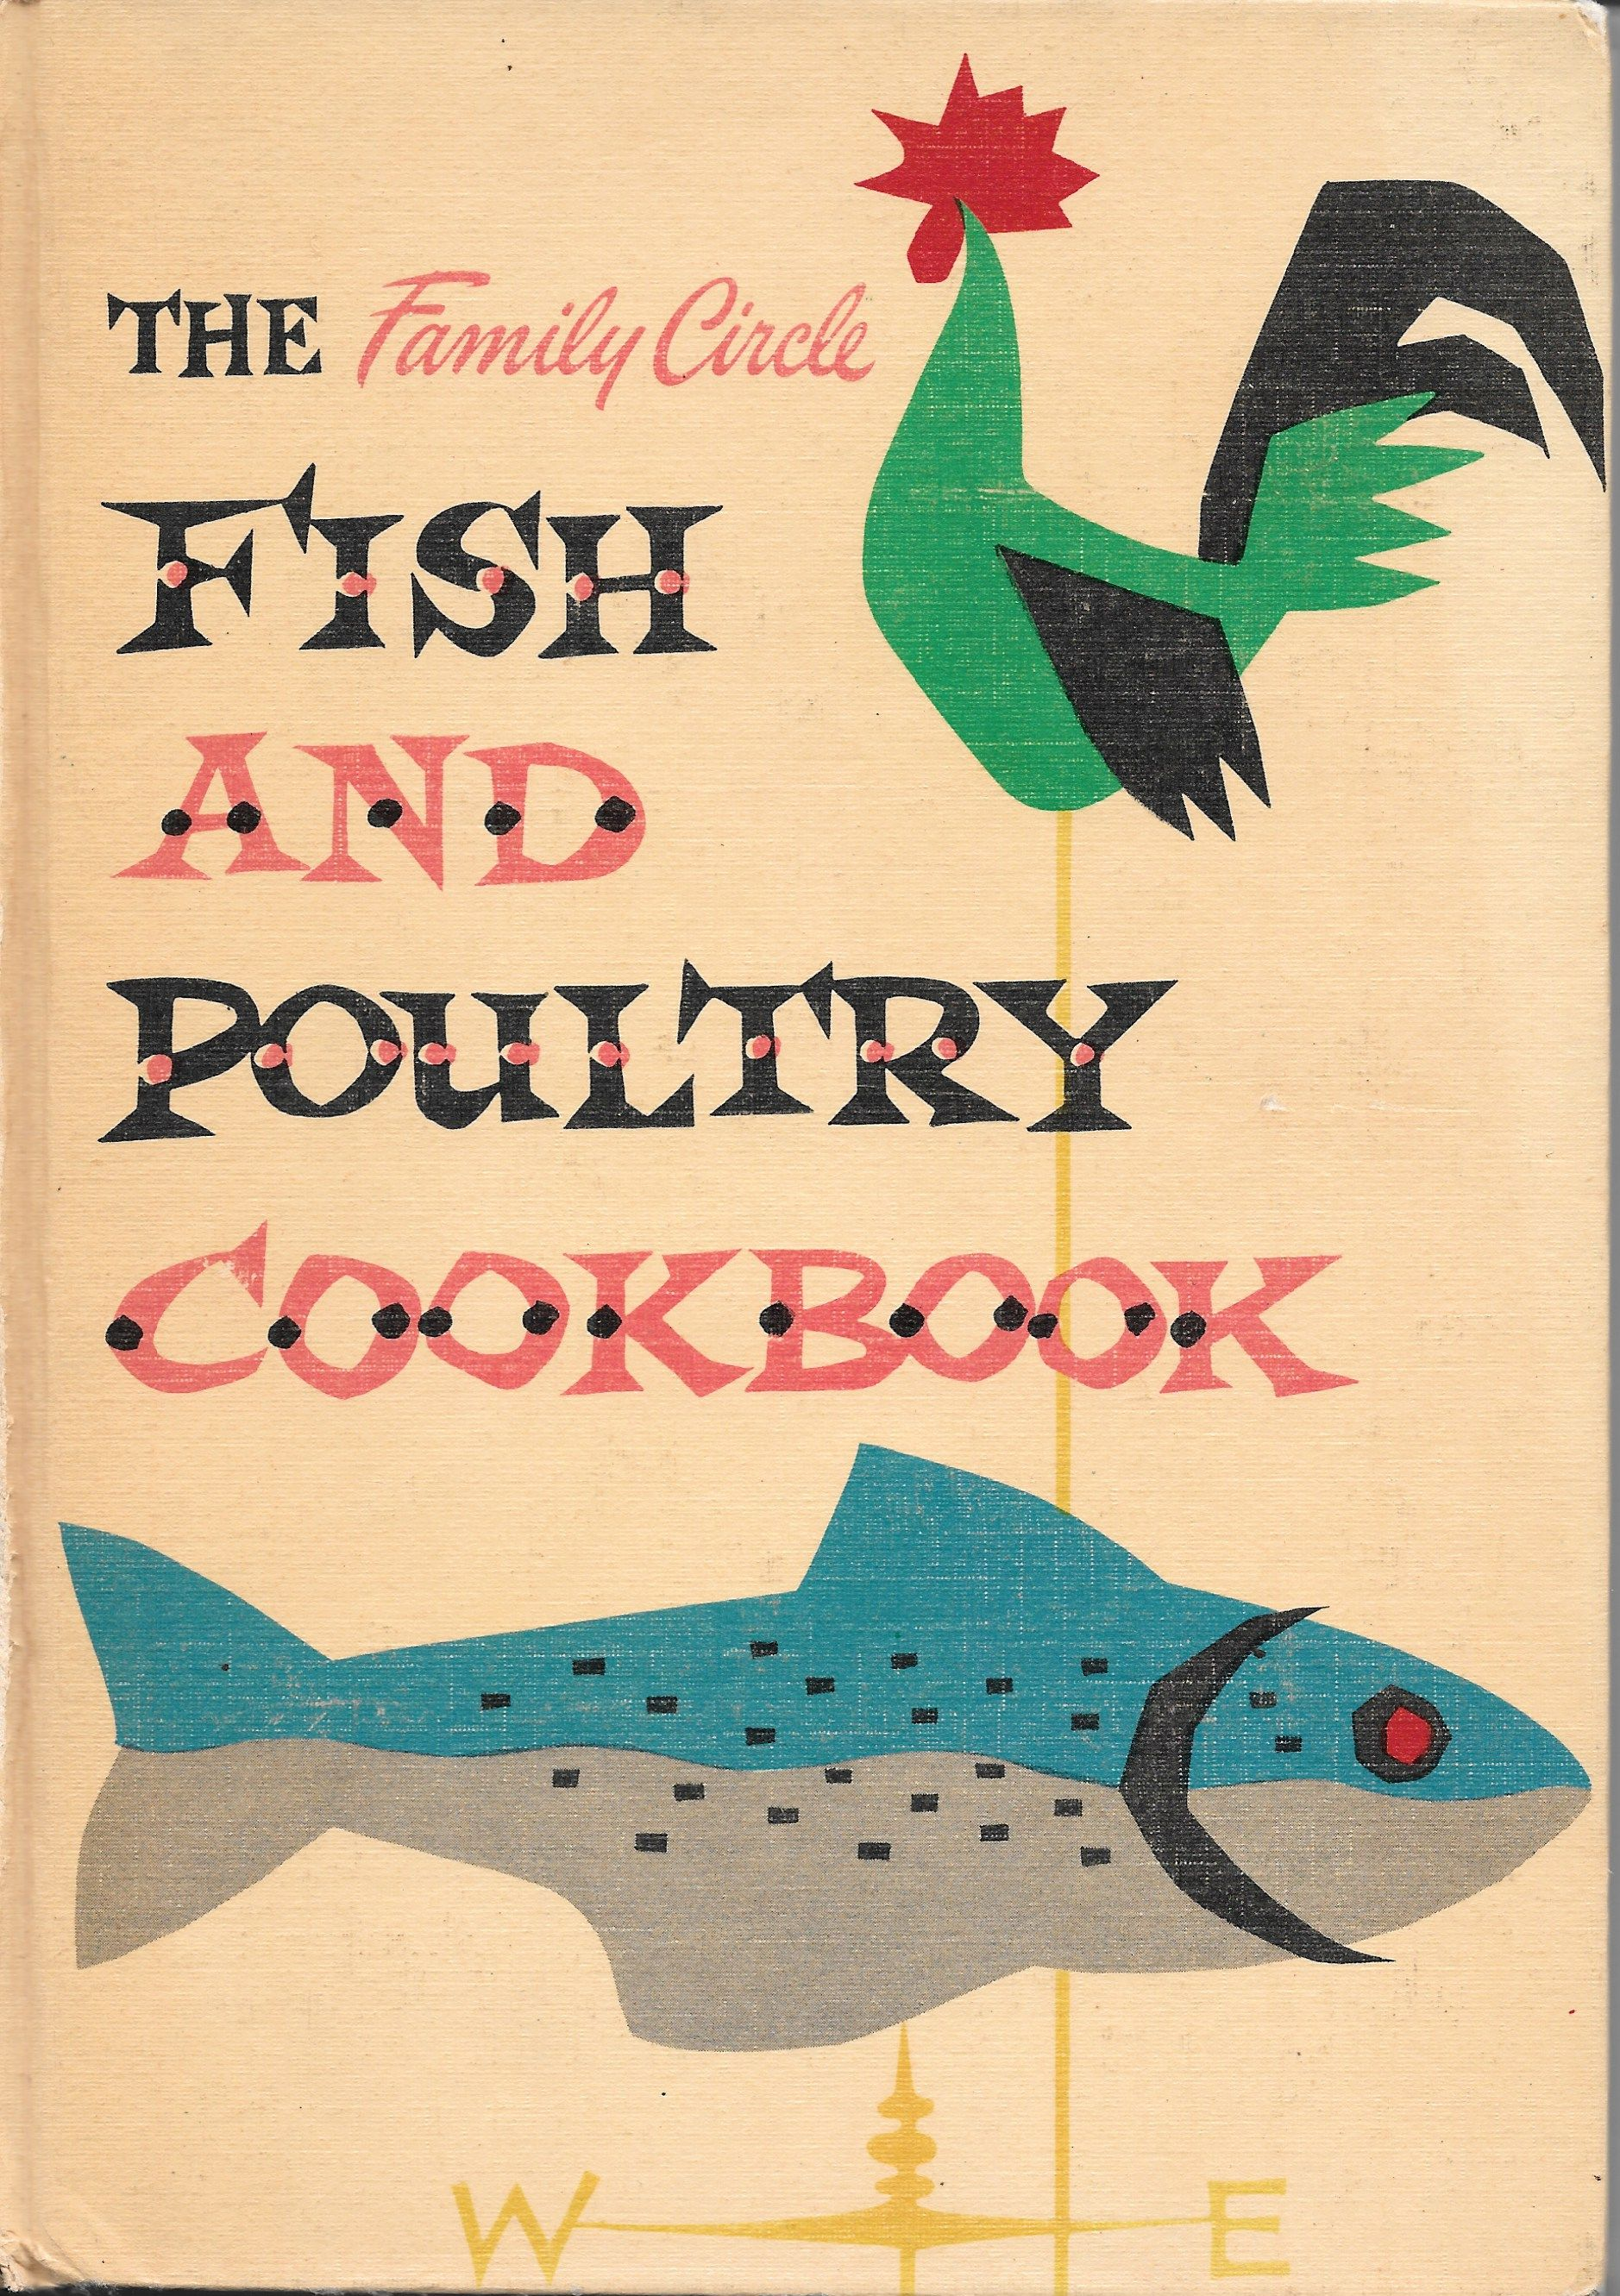 Family Cookbook Cover ~ Family circle fish & poultry cookbook cover art. 1955 vintage